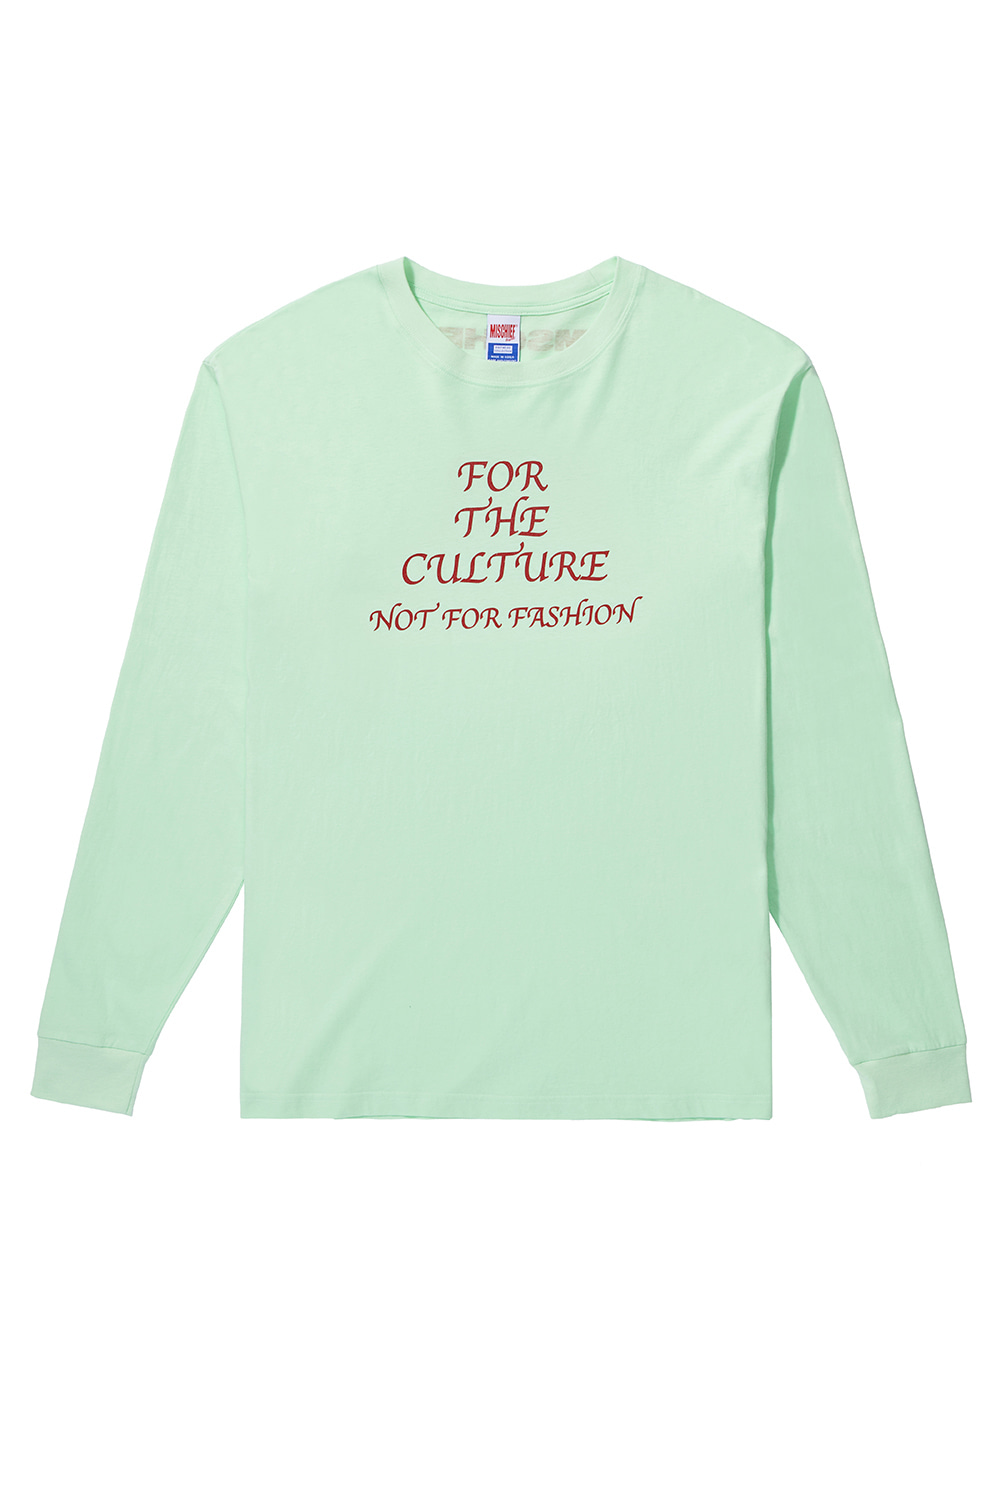 FOR THE CULTURE LONG SLEEVE_pale green